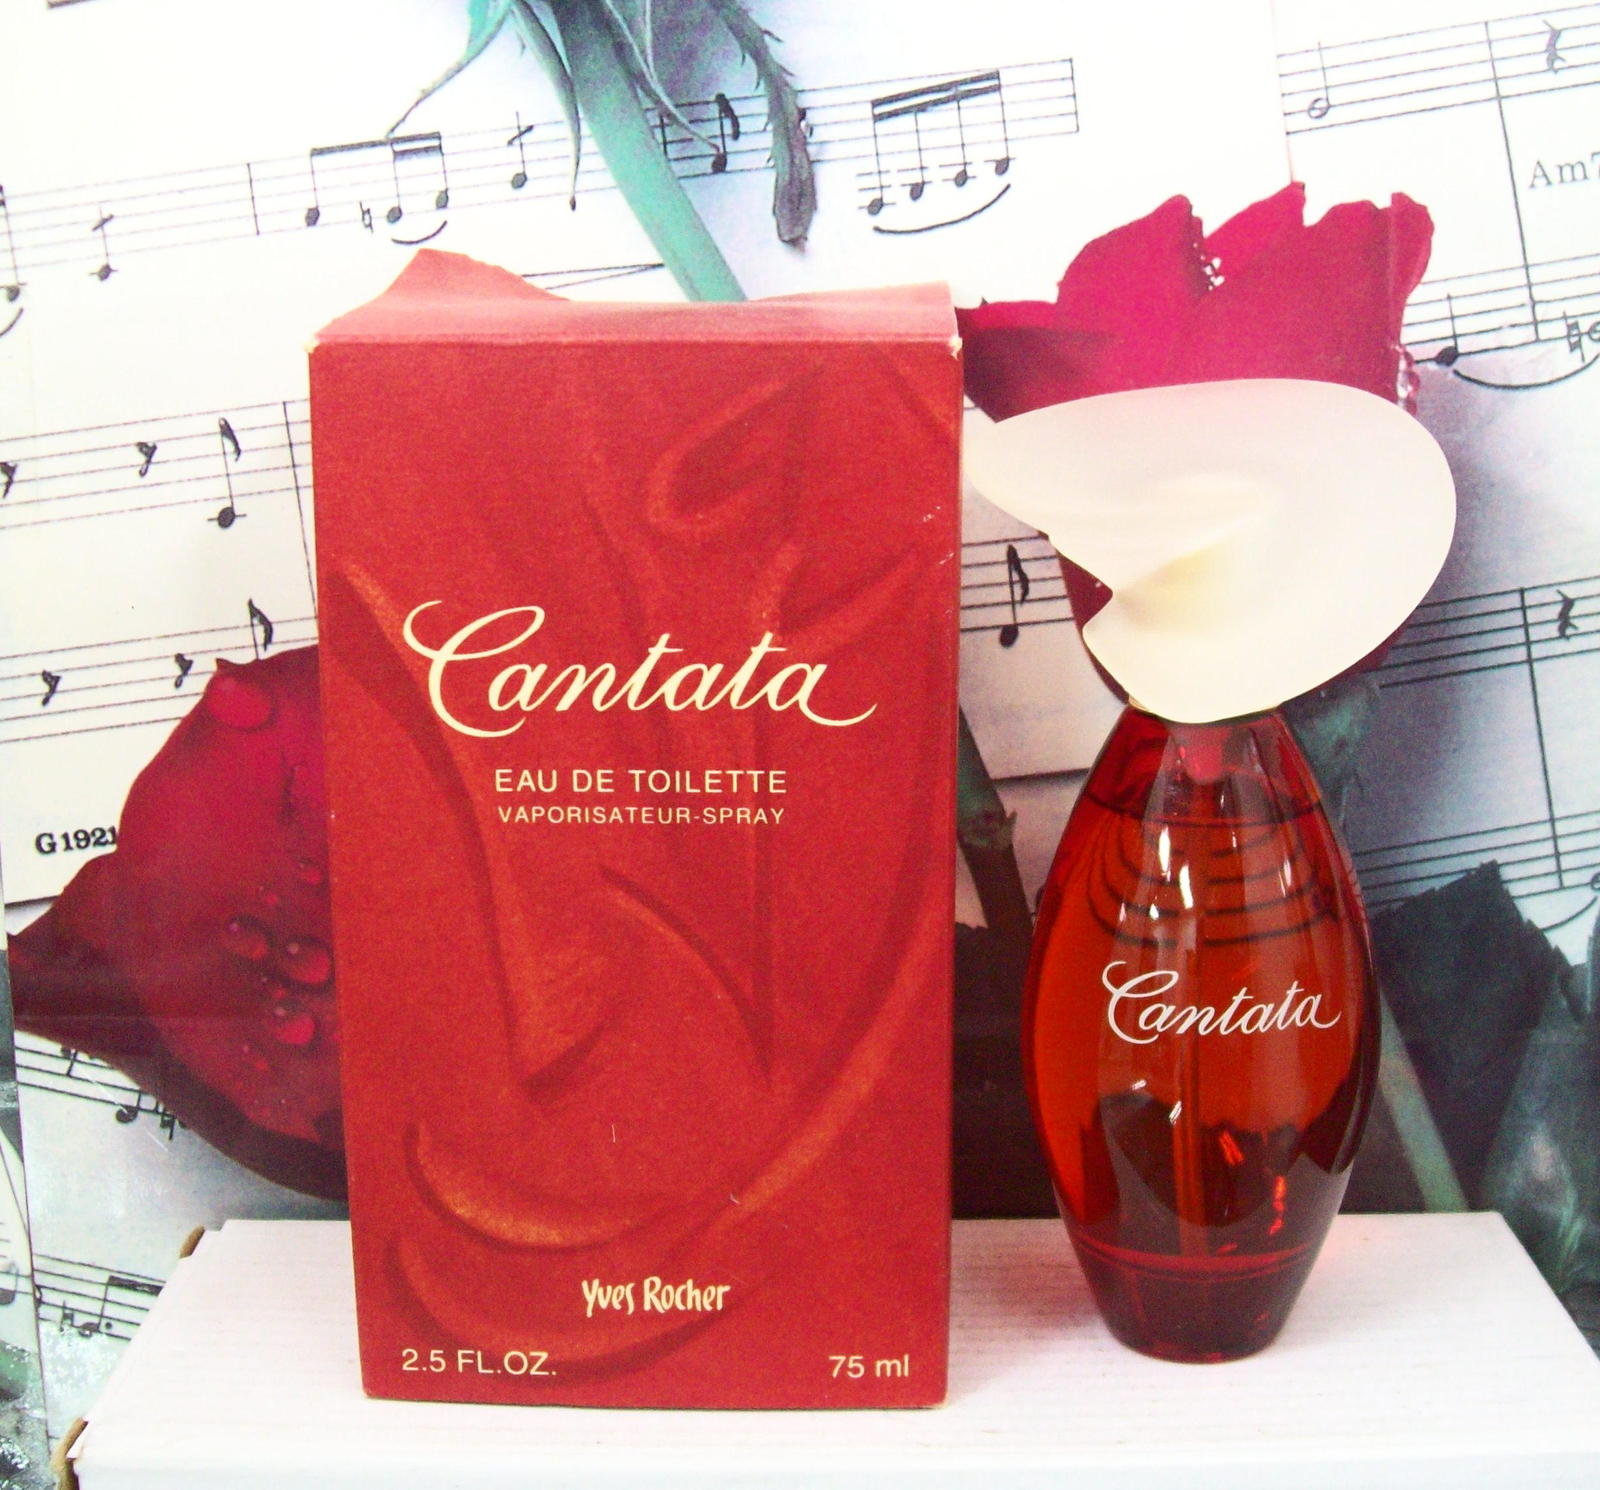 Primary image for Yves Rocher Cantata EDT Spray 2.5 FL. OZ.